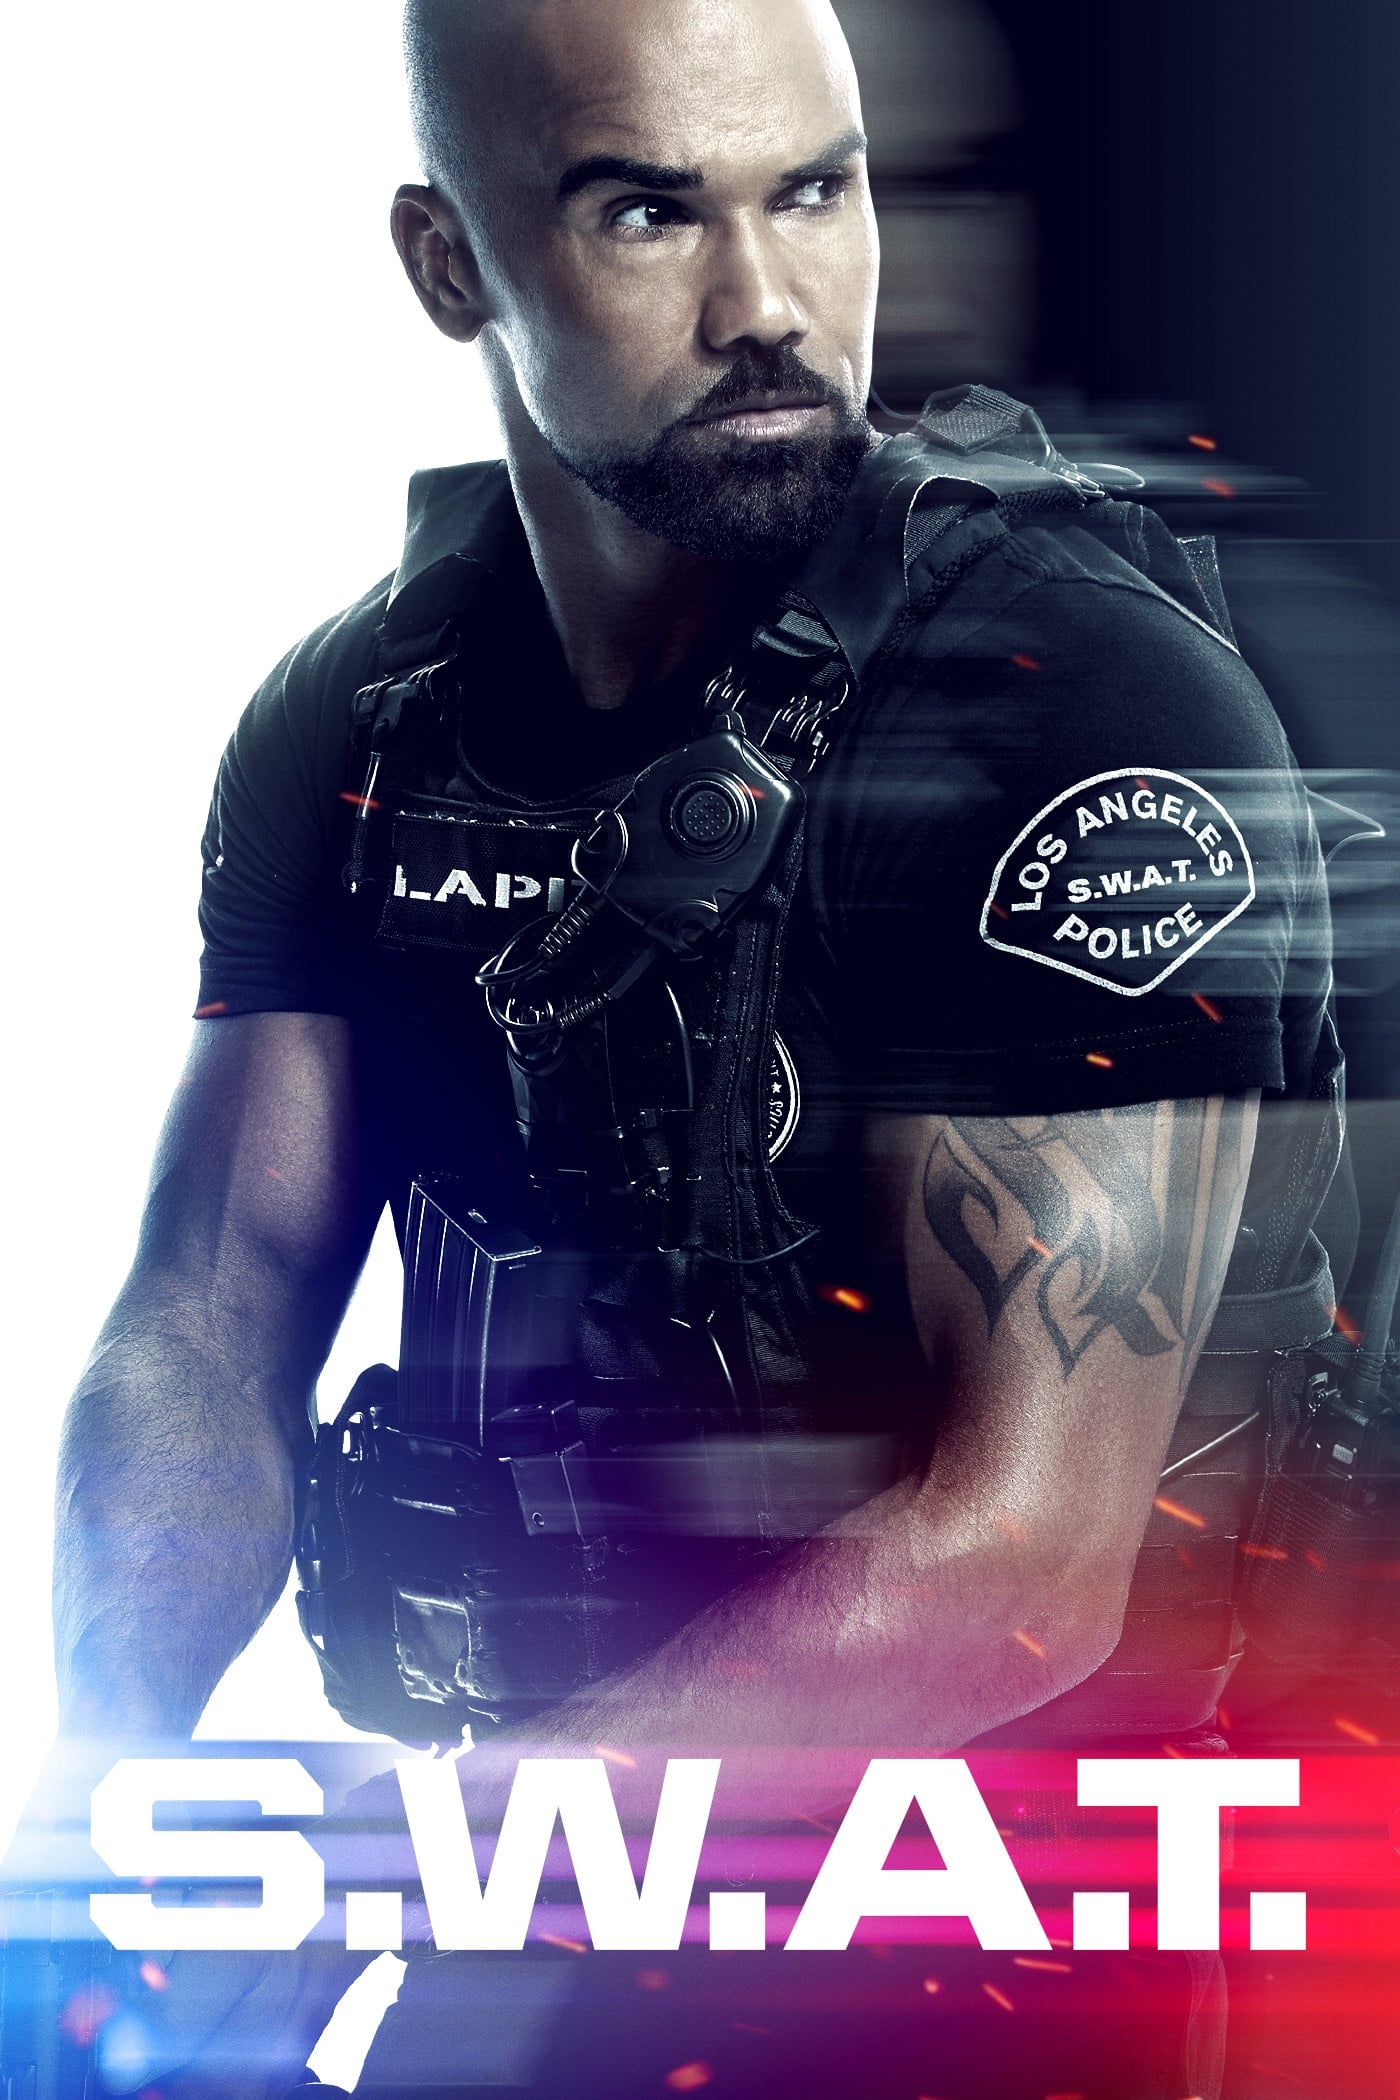 image for S.W.A.T.